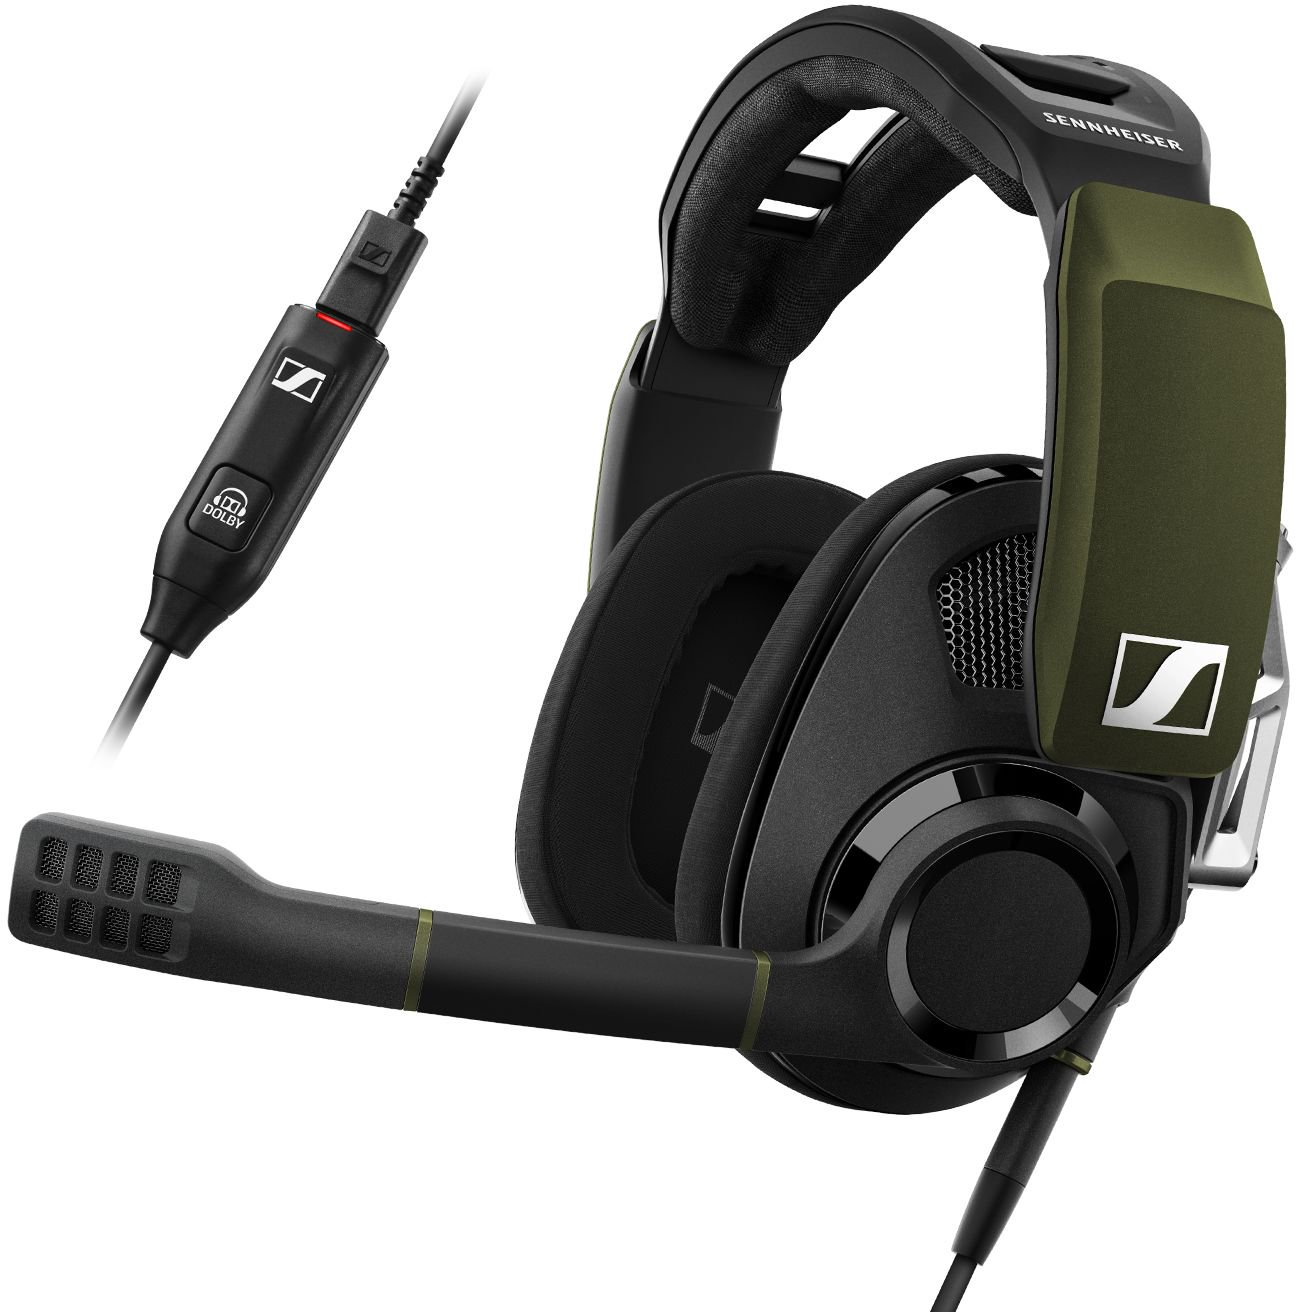 58c0cd446bf Additionally, the Sennheiser GSP 550 Gaming Headset boasts a high quality  build and more importantly, a very comfortable experience thanks to the  dual-axis ...